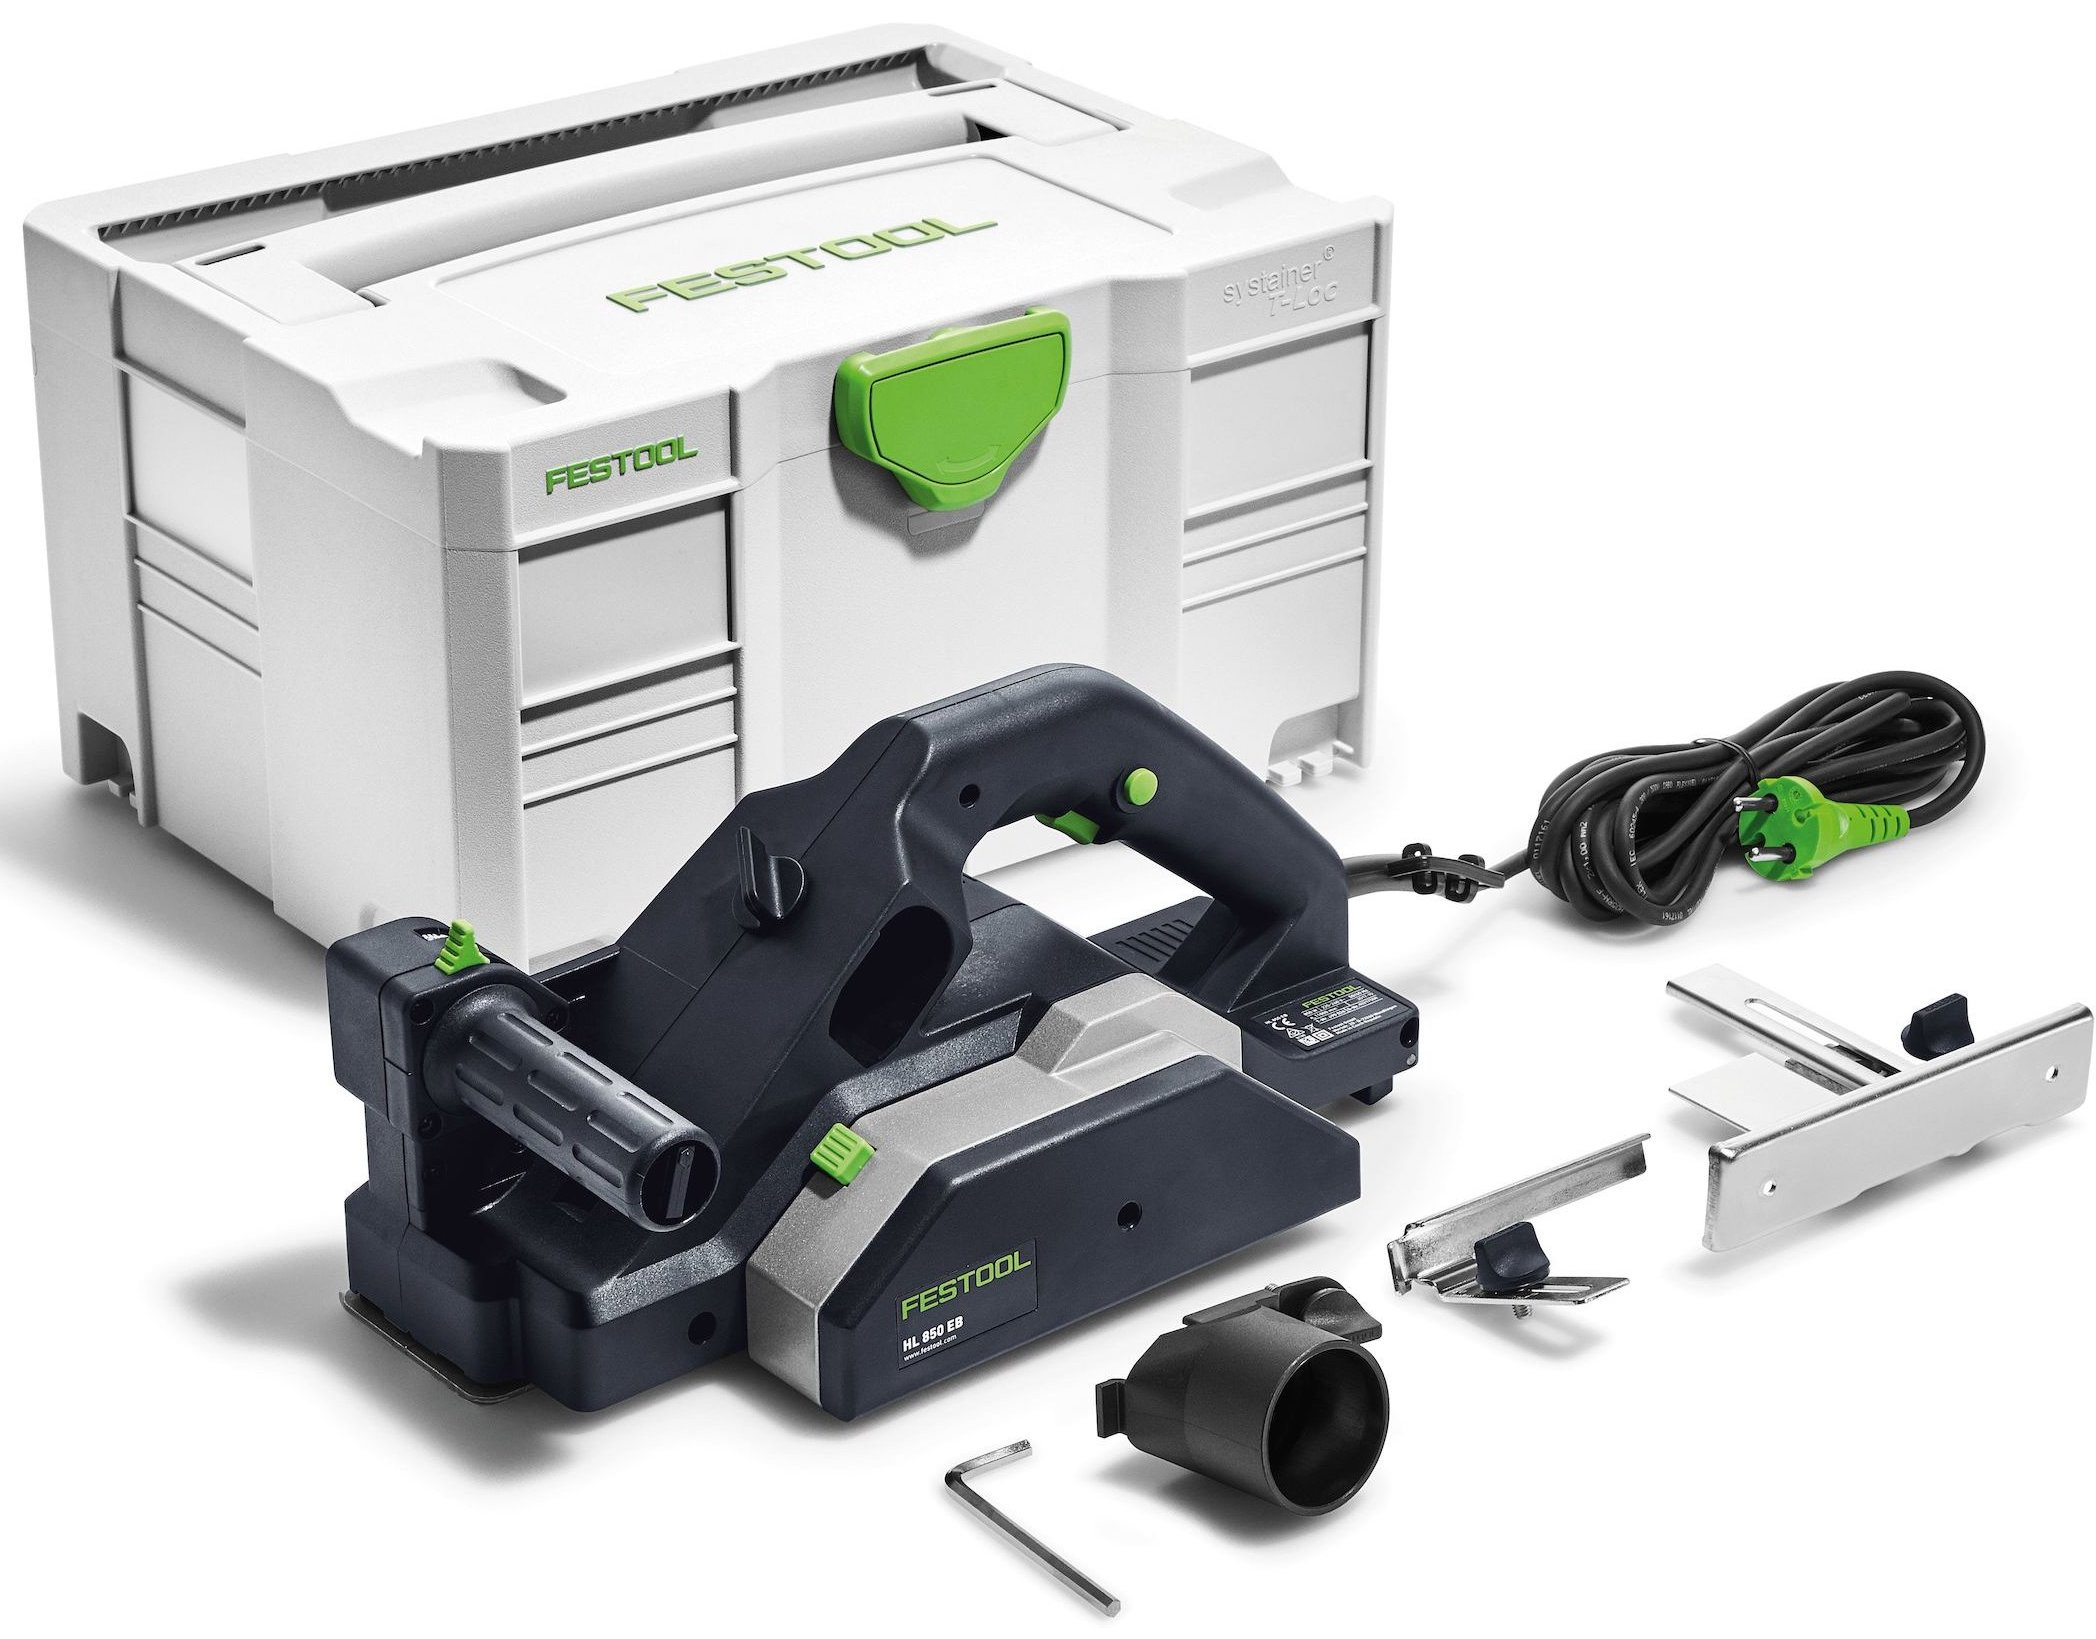 Festool Schaafmachine Hl850eb-Plus